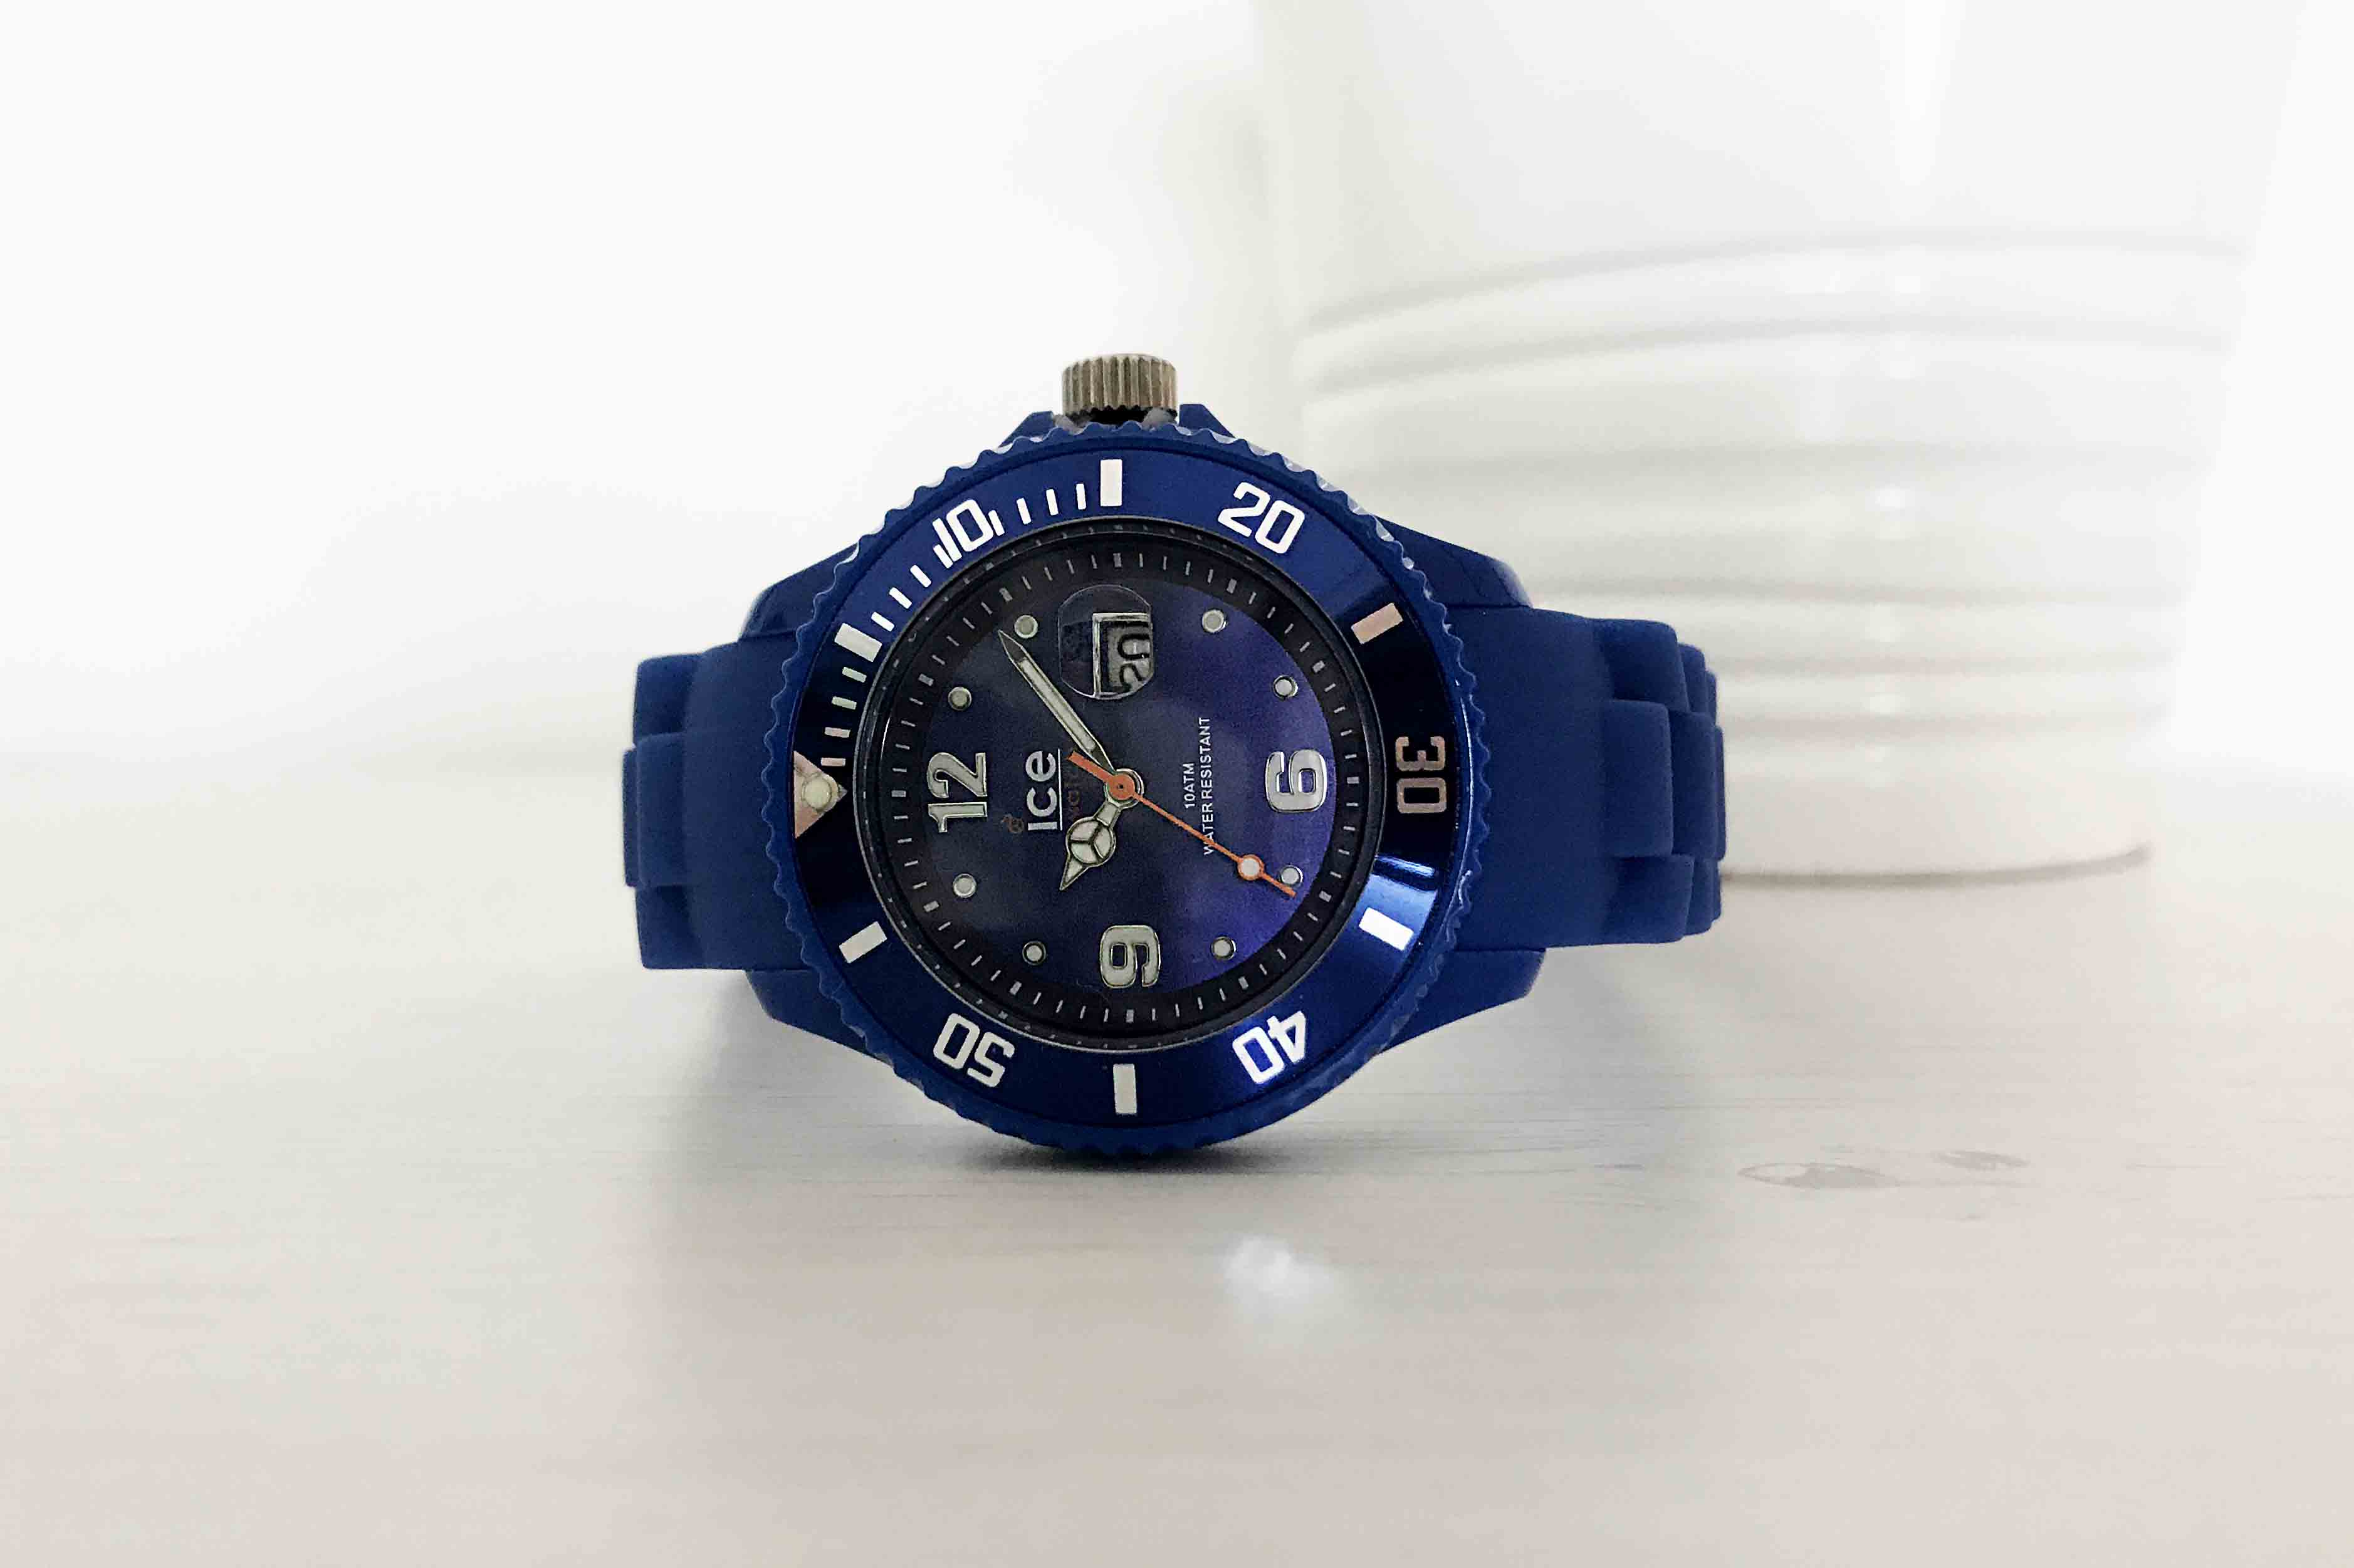 football save watches mudmaster buy img blue rubber casio online casino watch shock g